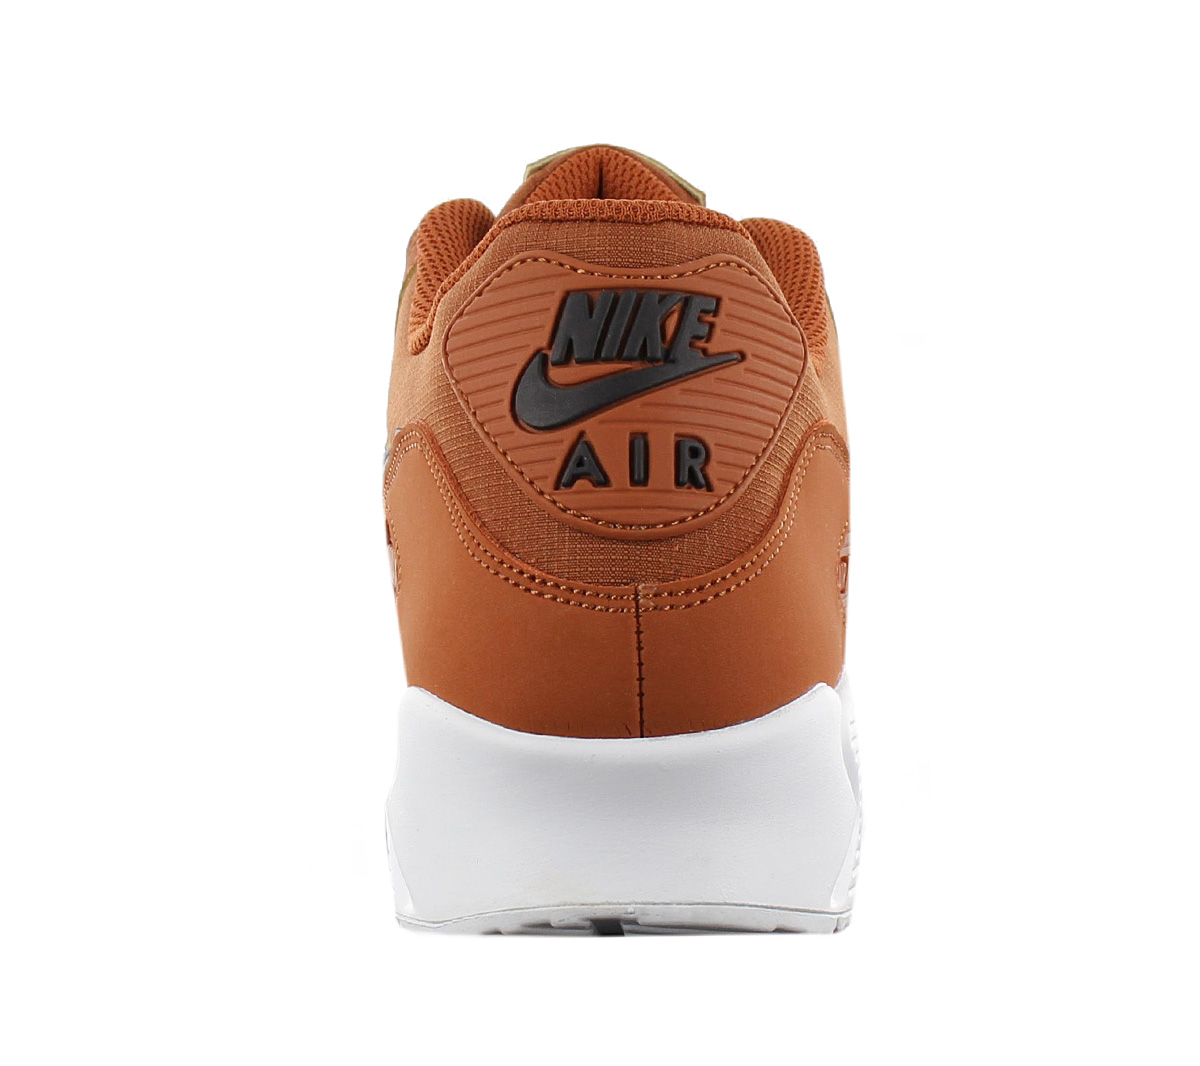 outlet store b7fd3 45a60 Nike Air Max 90 Essential Men s Sneakers Shoes Sneakers Aj1285-203 ...